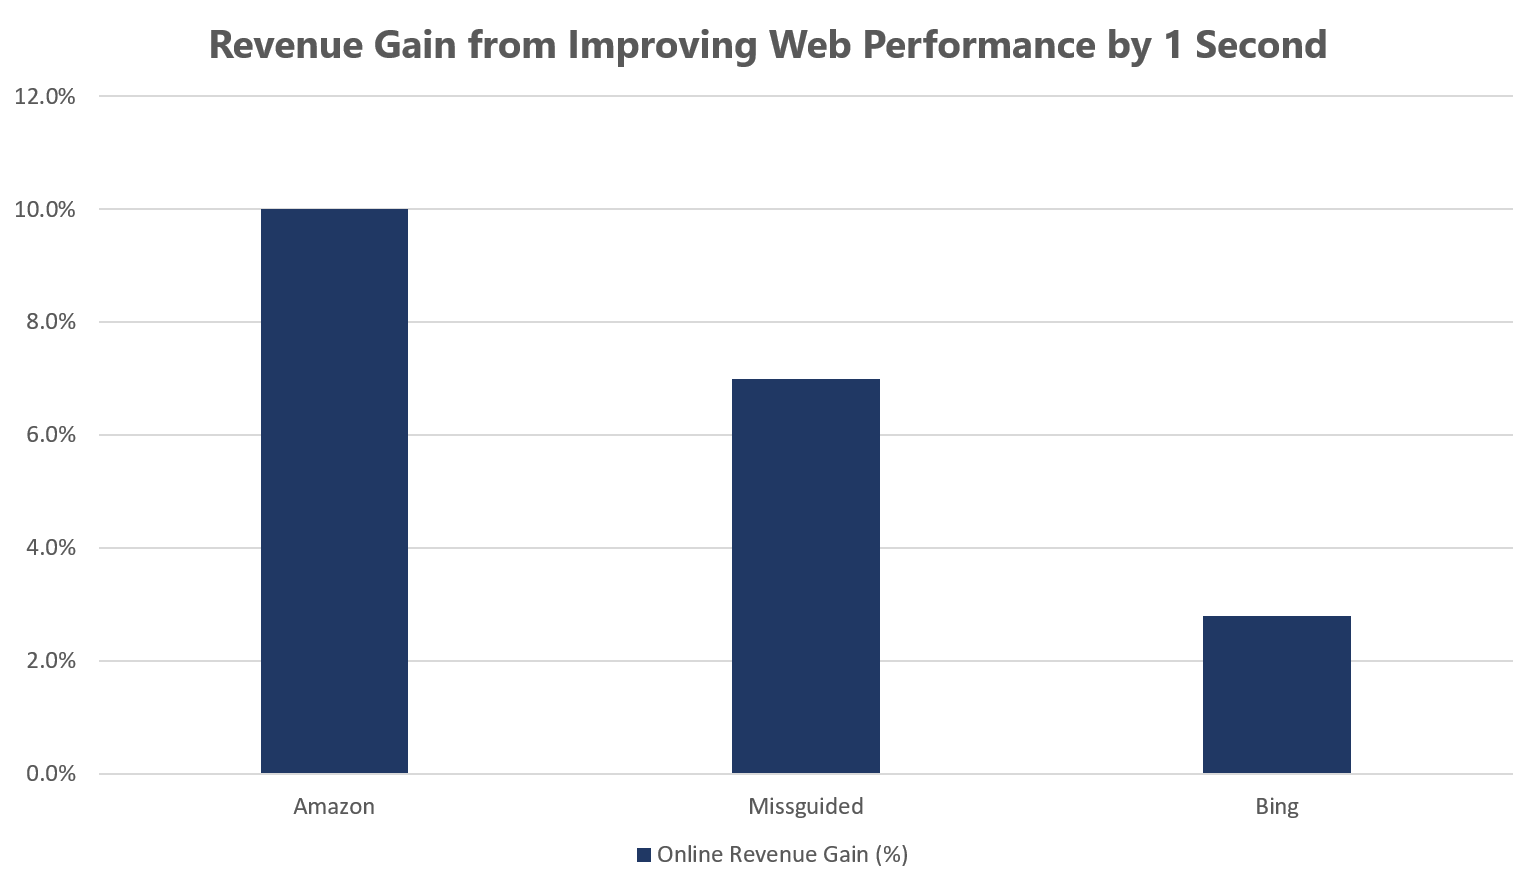 revenue gain from improving web performance by 1 sec